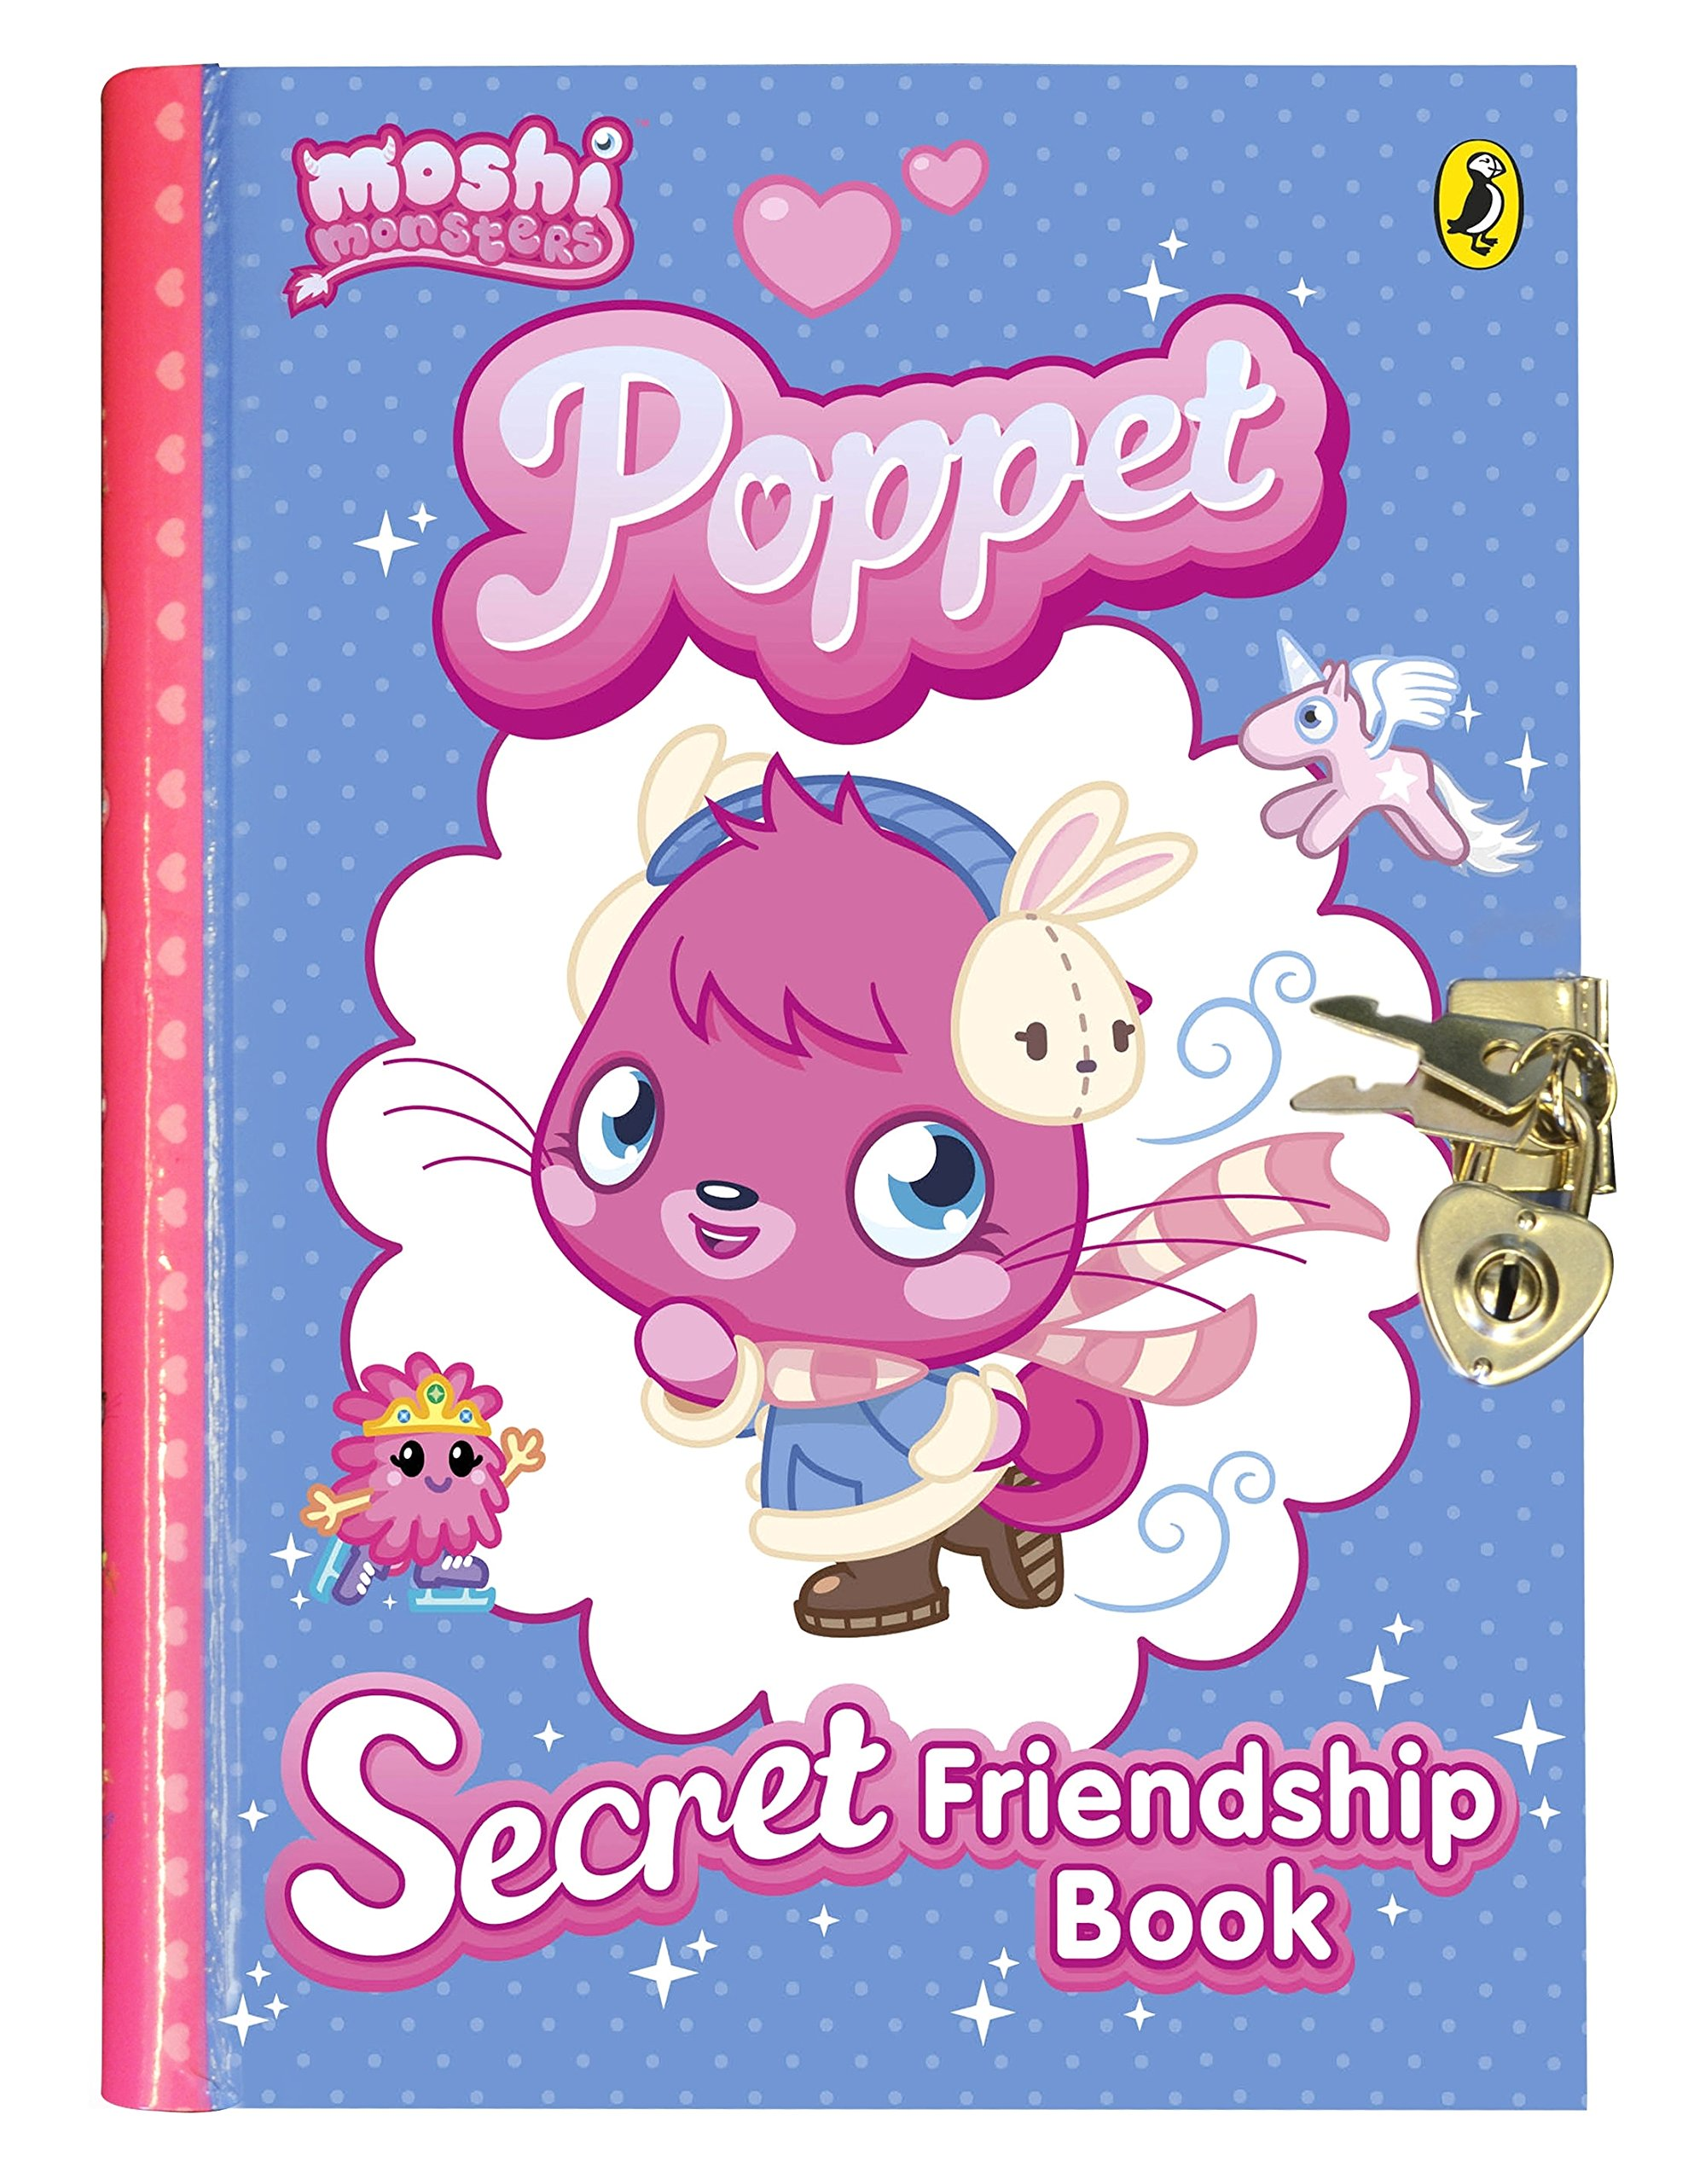 Buy moshi monsters poppet secret friendship book book online at low prices in india moshi monsters poppet secret friendship book reviews ratings